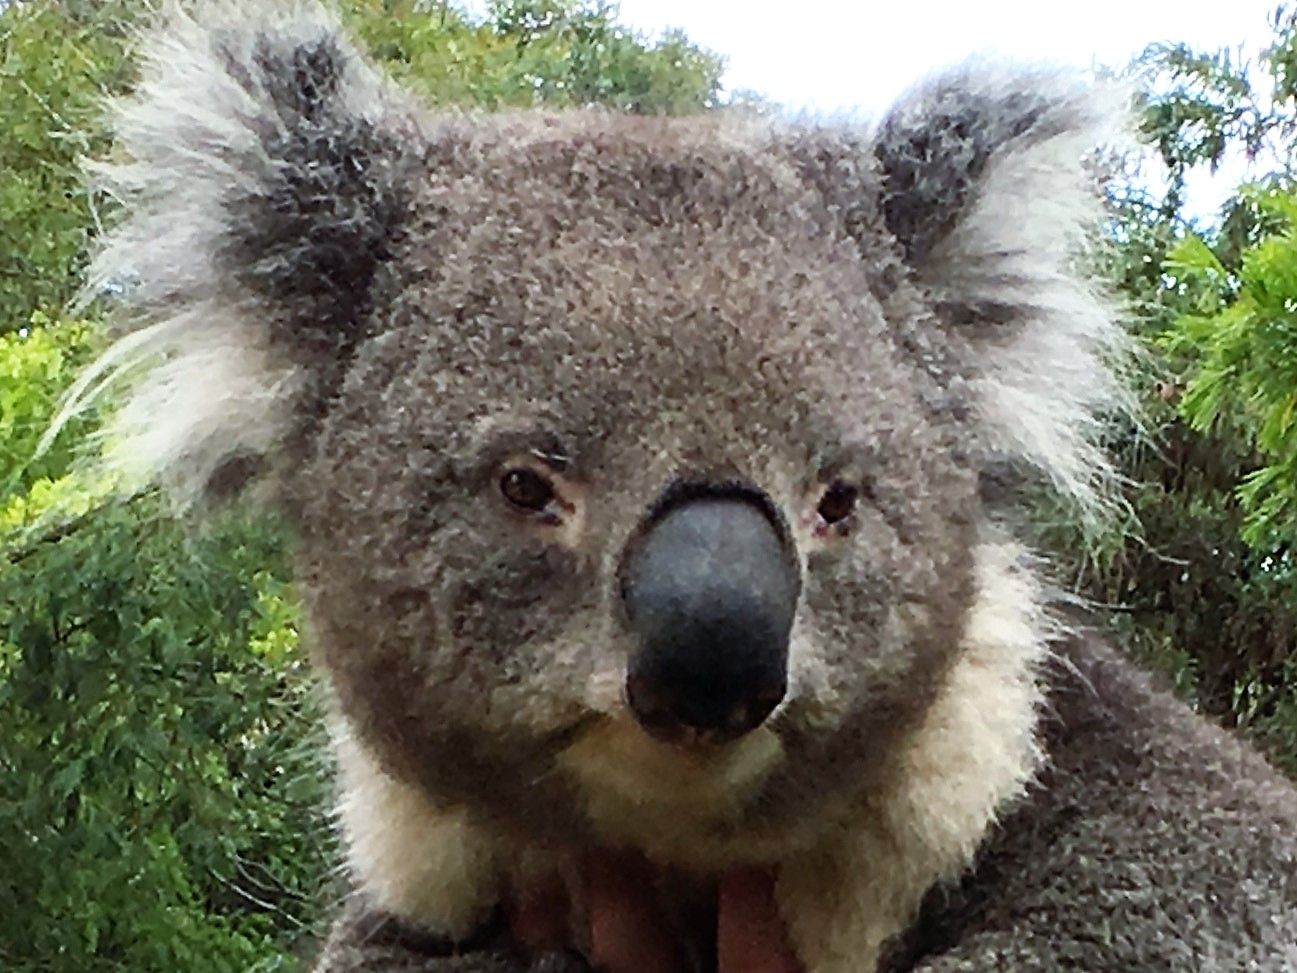 Koala in an Australian Wildlife Sanctuary